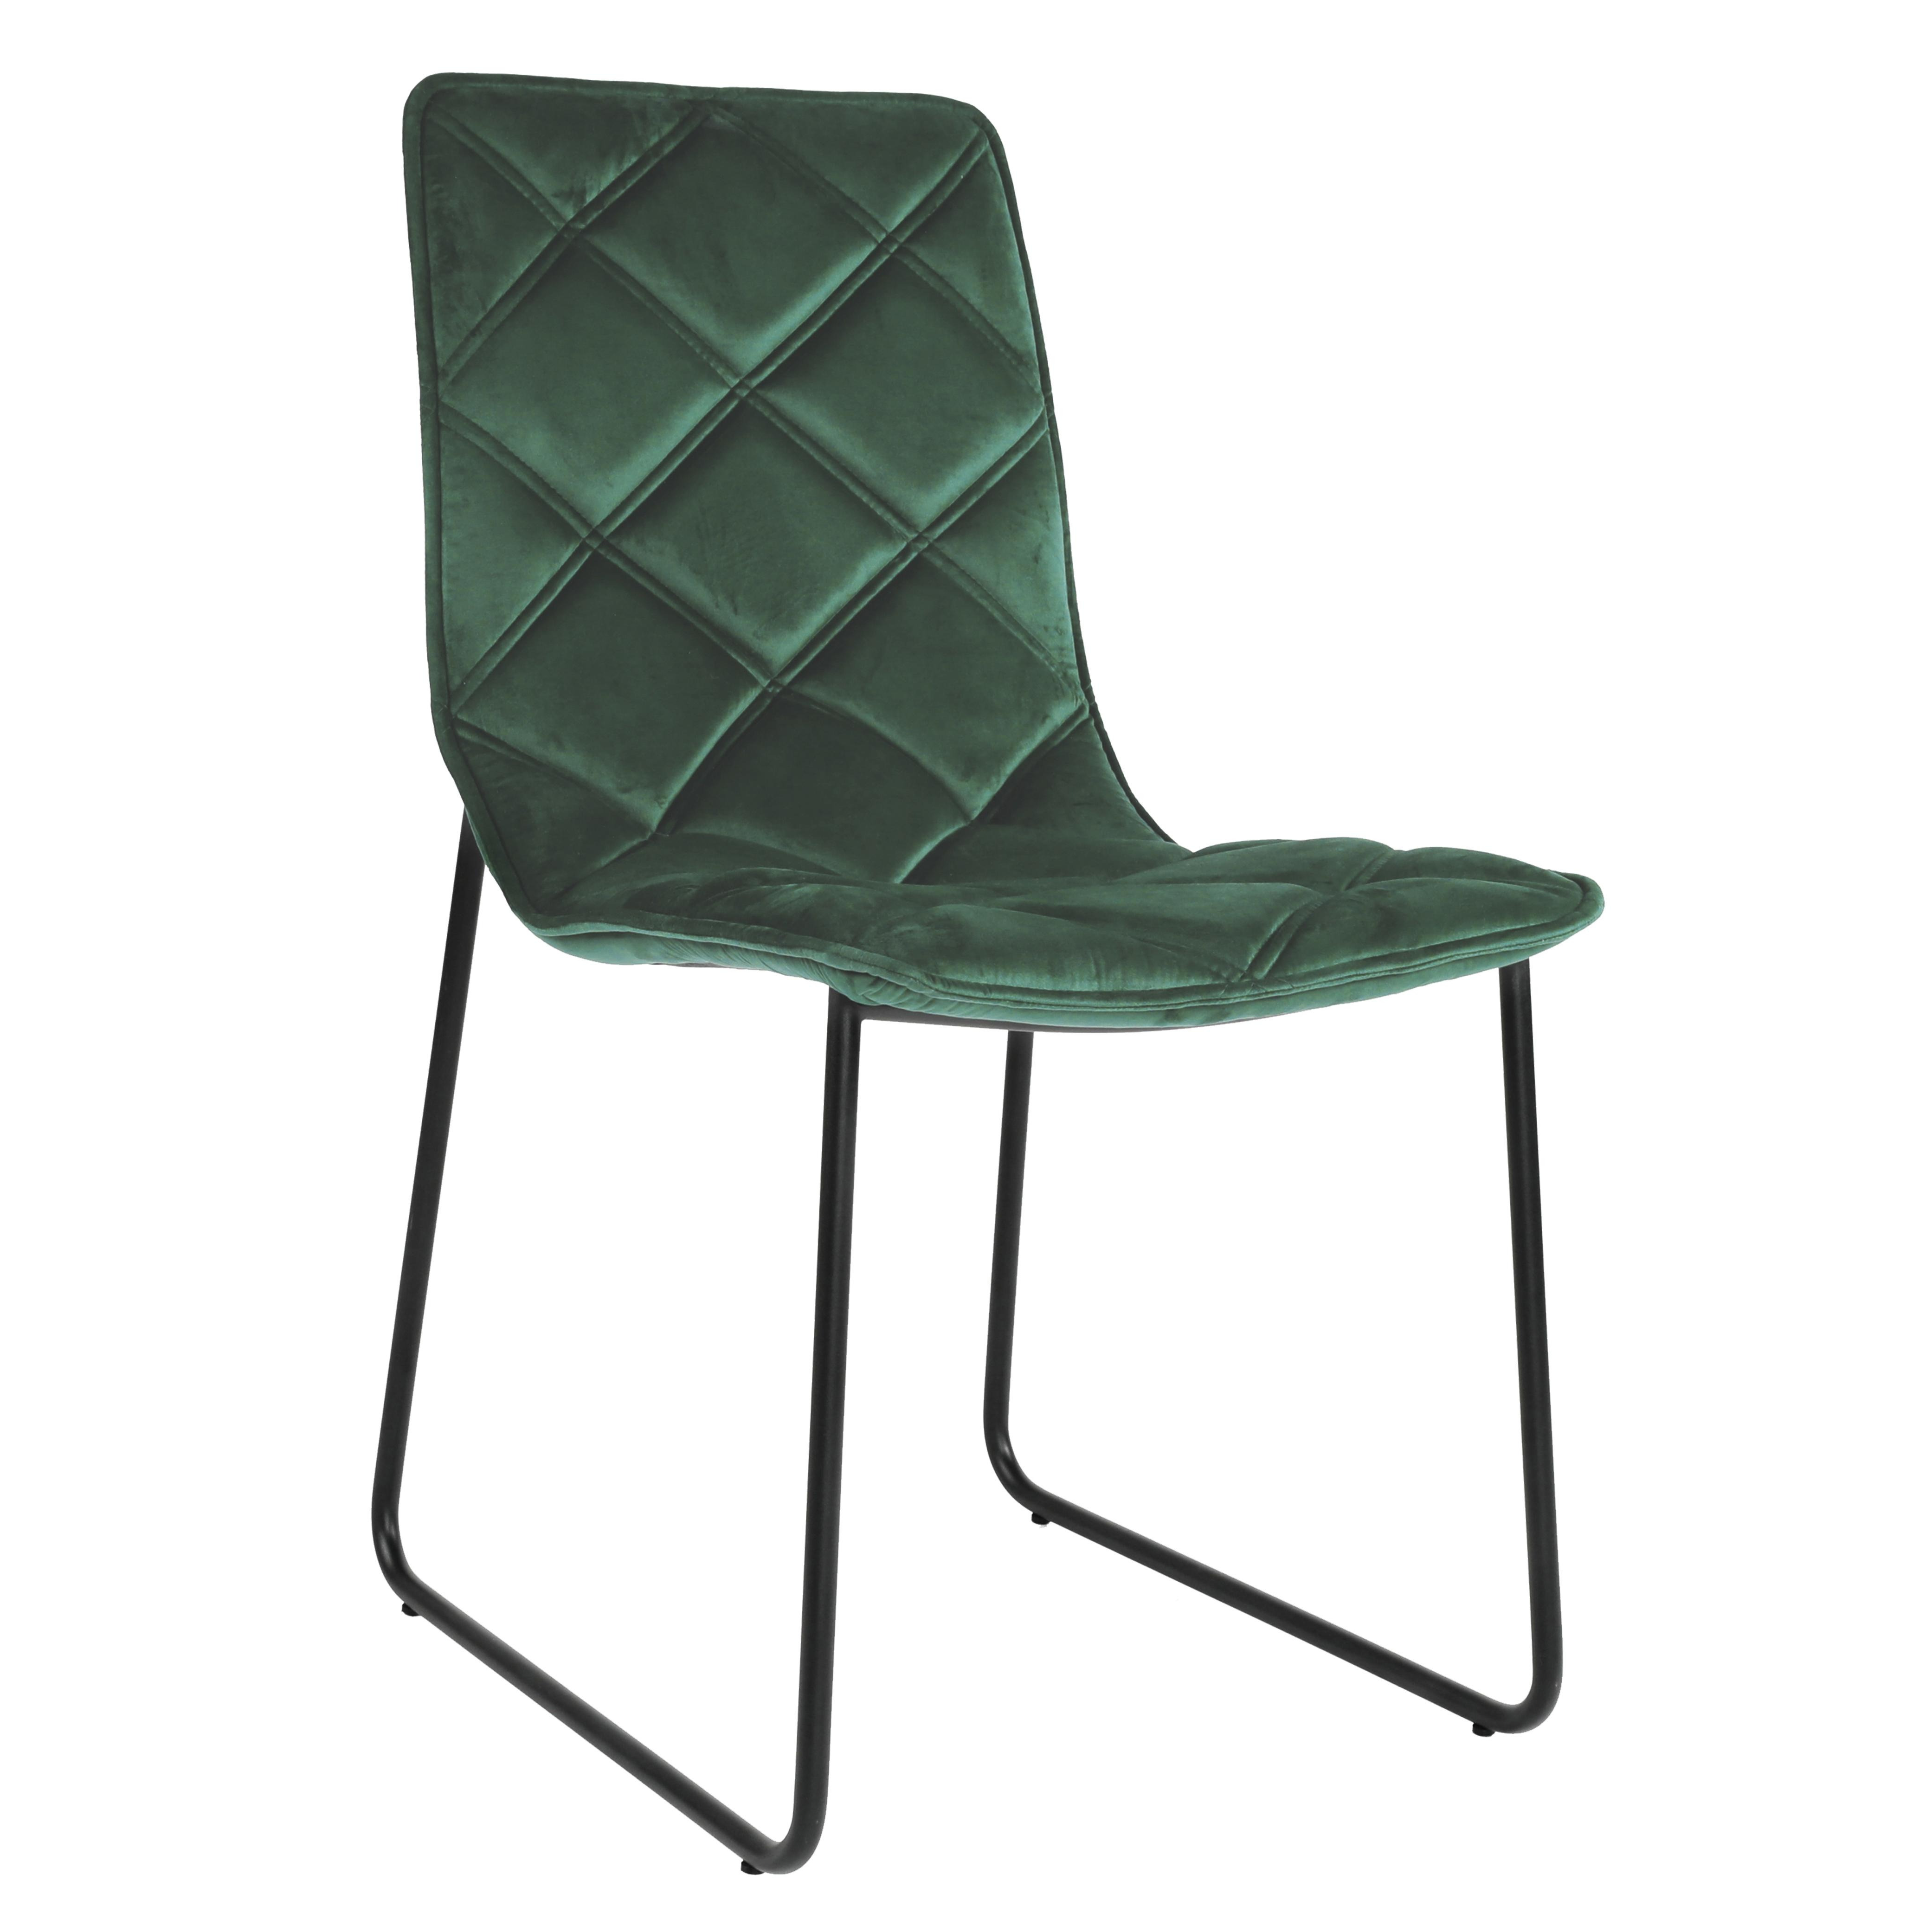 Portela dining chair in green velvet